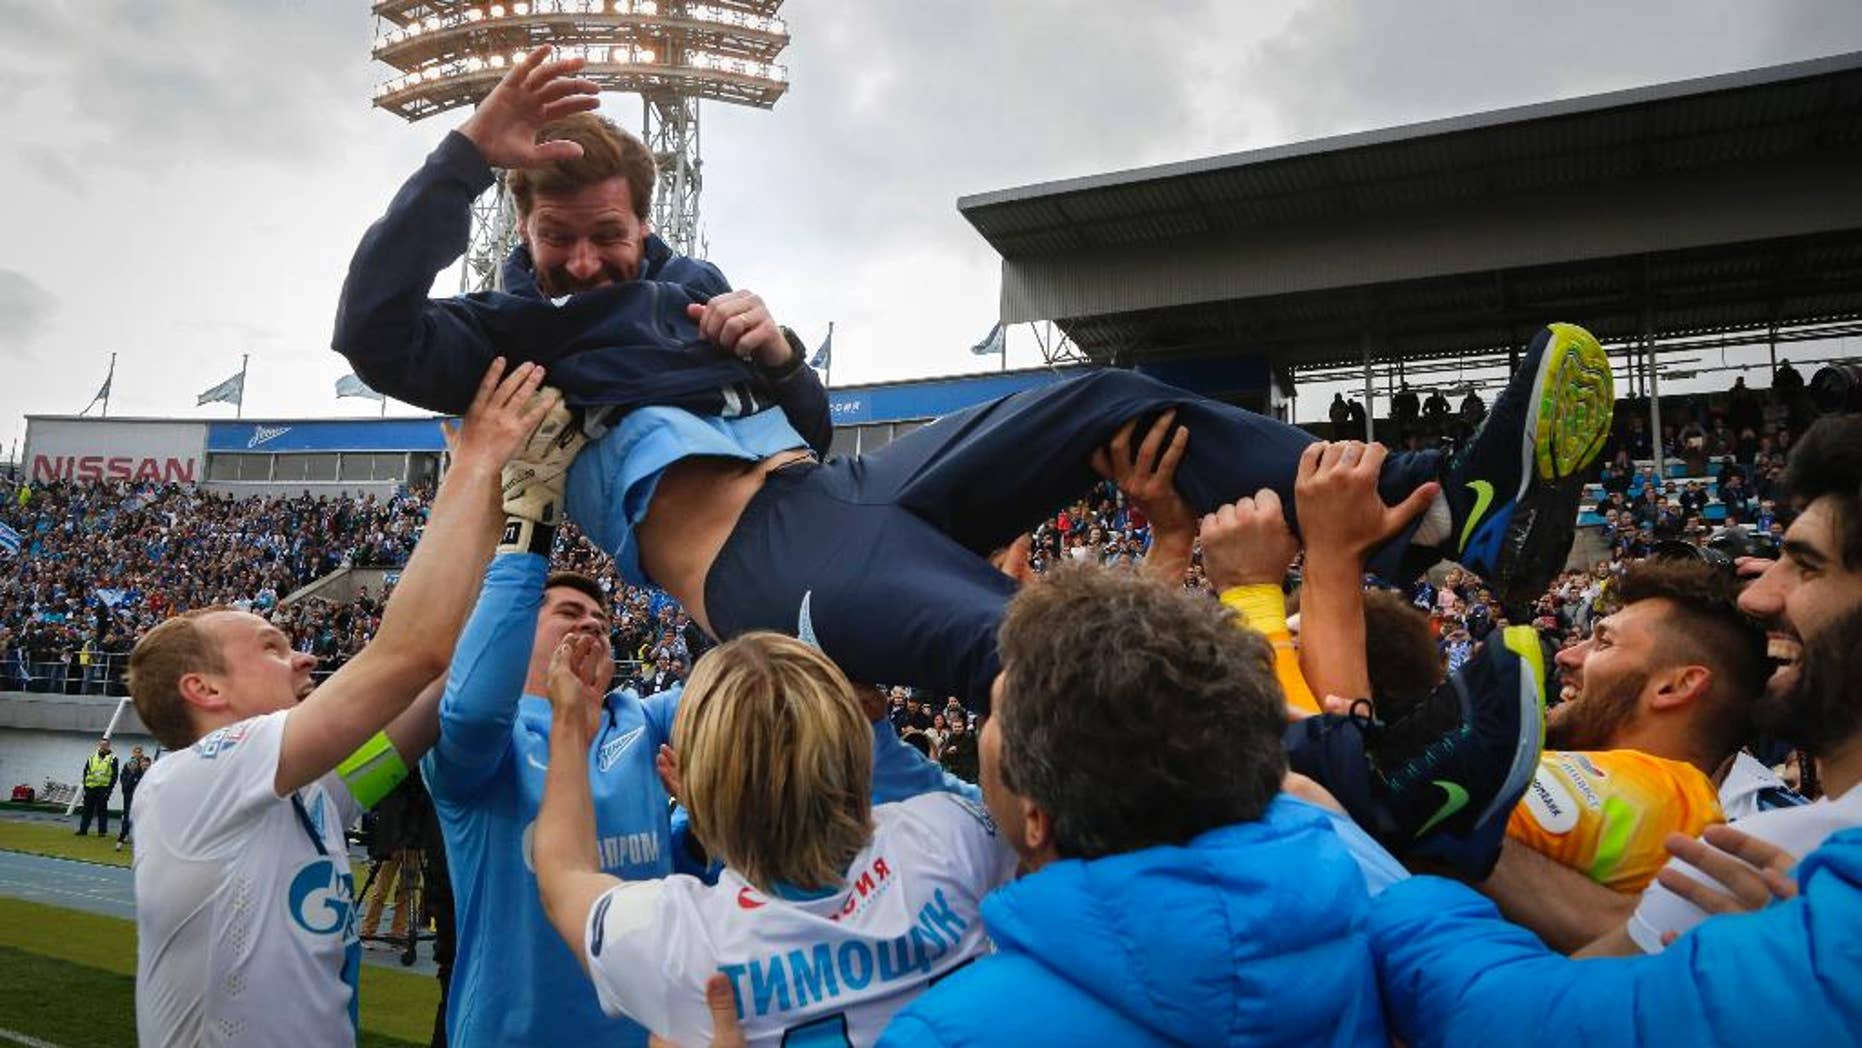 Zenit's players throw Zenit's head coach Andre Villas-Boas as they celebrate after winning the national soccer Championship after match against Ufa in St.Petersburg, Russia, Sunday, May 17, 2015. (AP Photo/Dmitry Lovetsky)